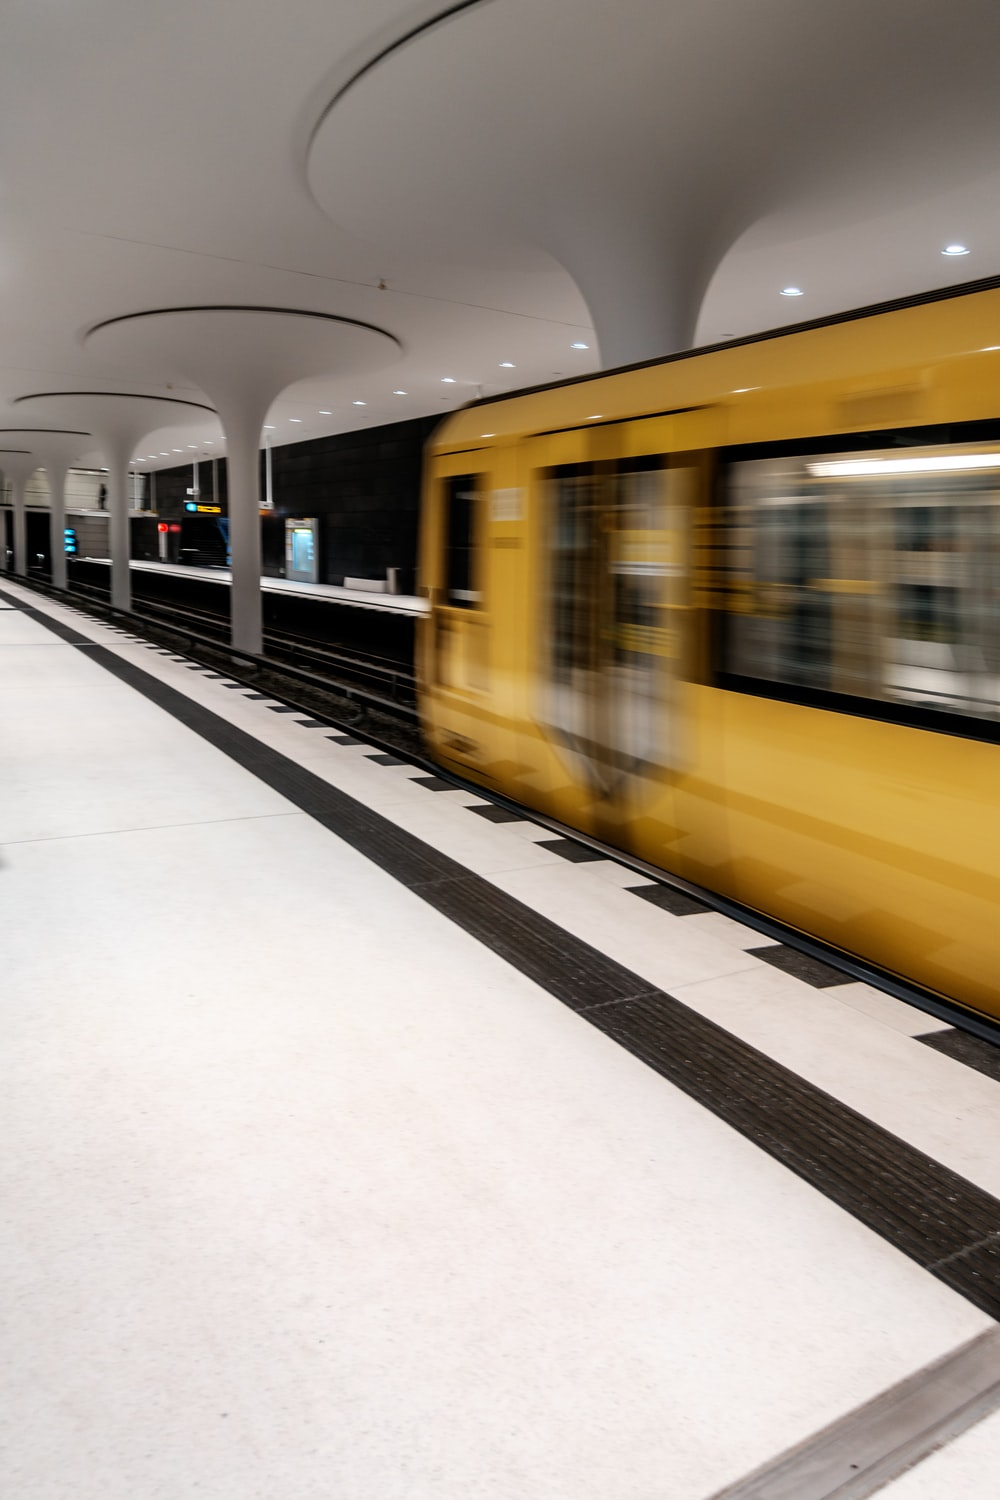 yellow and white train in train station